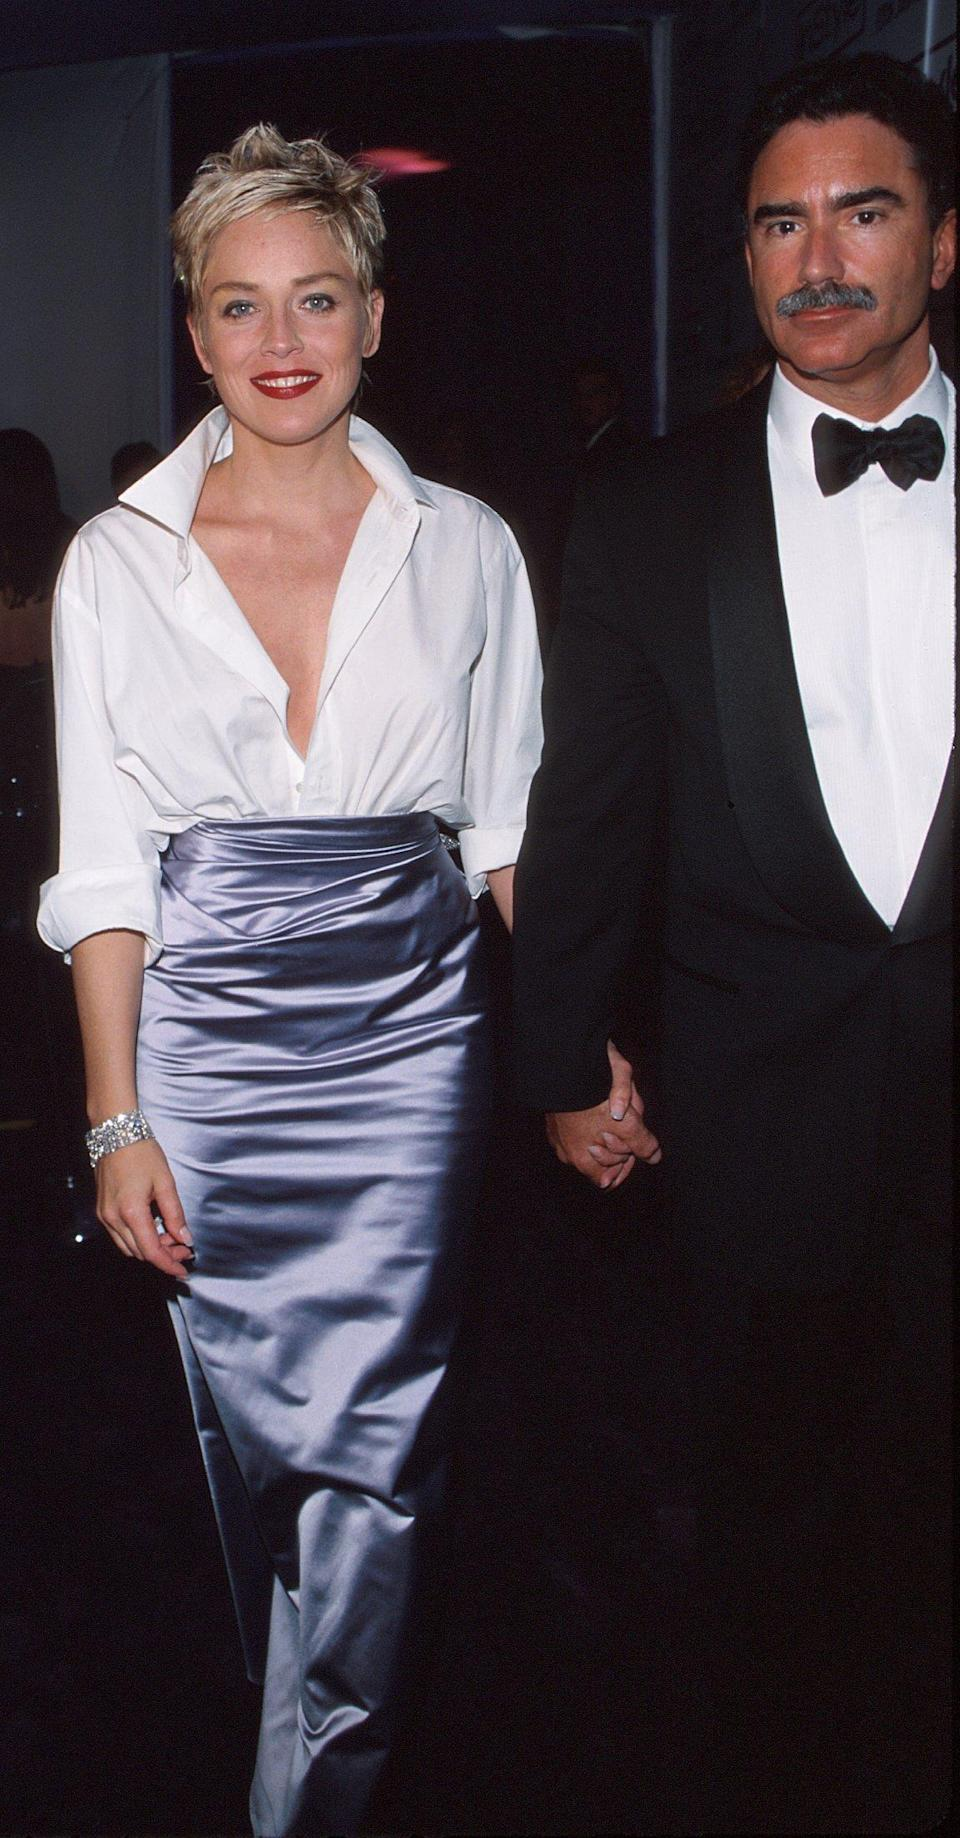 Recently channelled by Meghan Markle at a London awards, Sharon Stone's shirt and skirt combo at the Oscars in 1998 is almost as iconic as the actress herself. While not strictly a dress, we couldn't leave it out of this round-up.